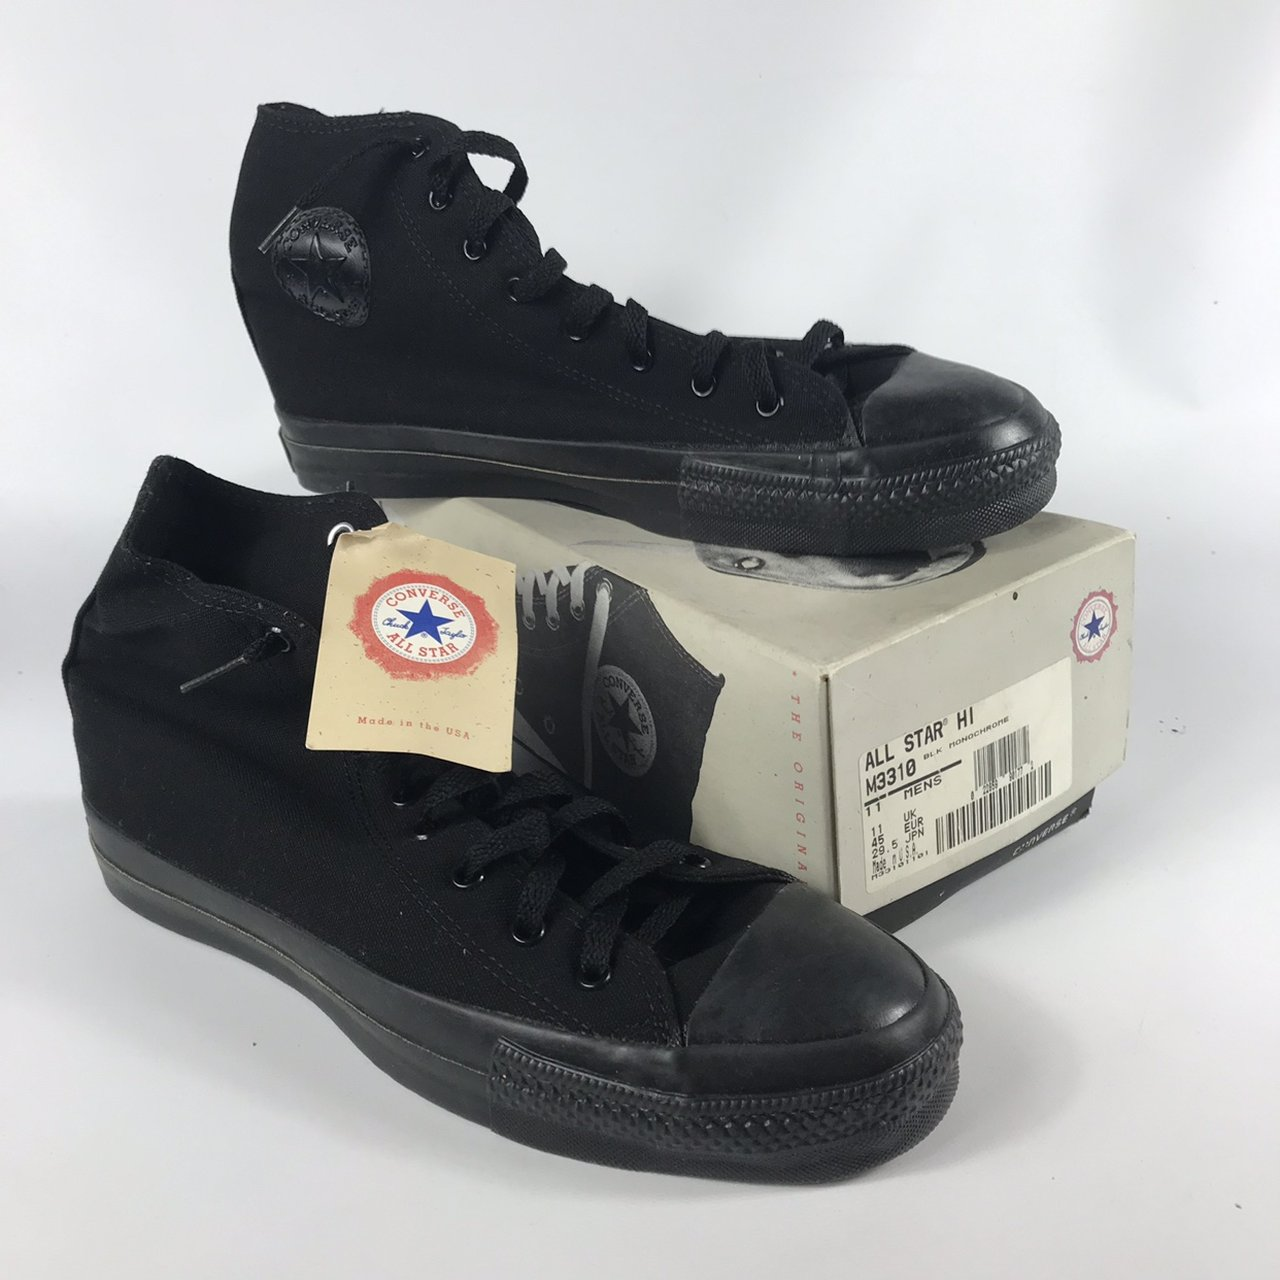 2c55f106f31e Vintage 90s Converse Made in USA Chuck Taylor All Star Hi - Depop